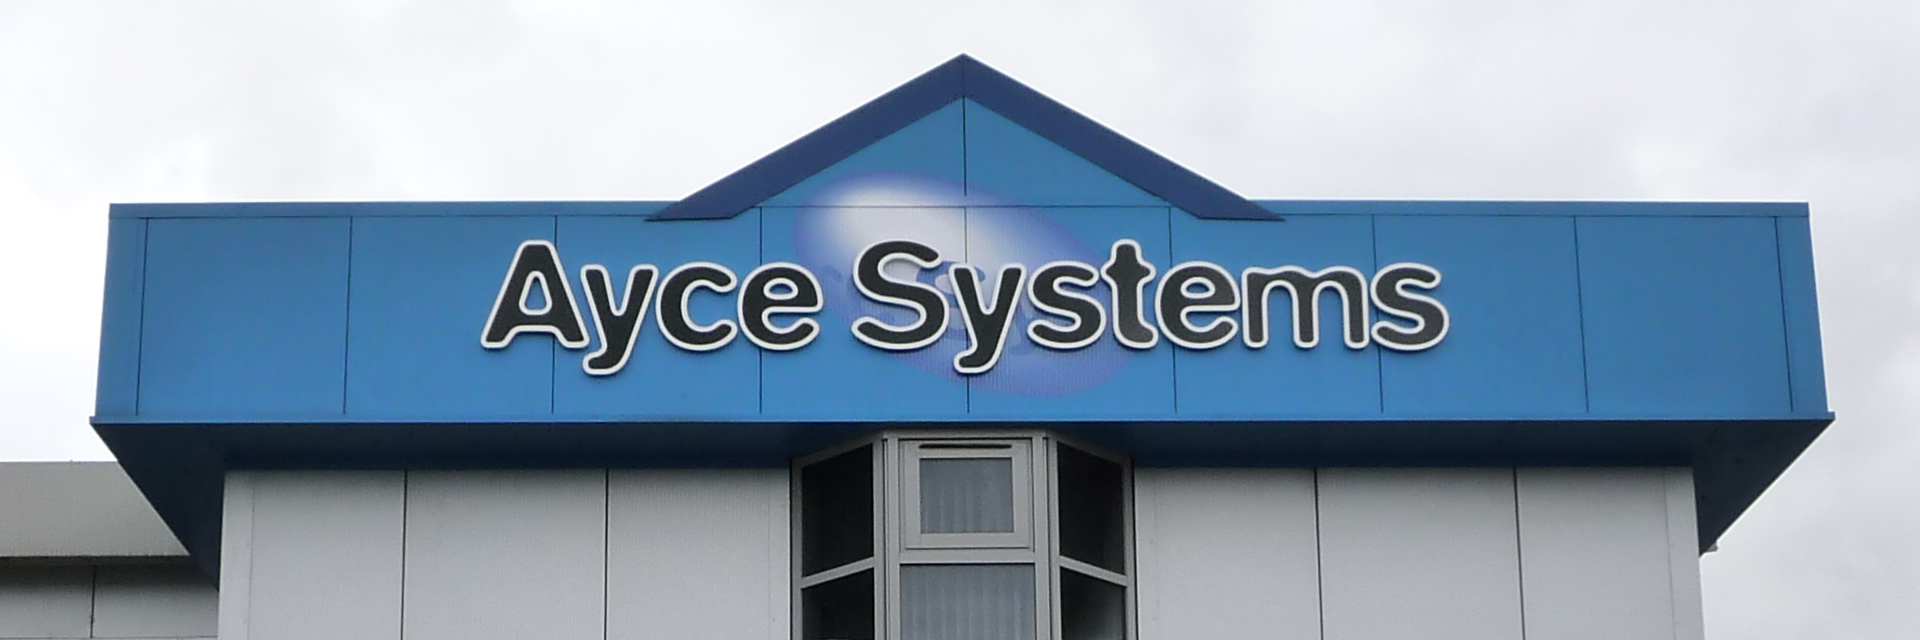 Ayce Systems Location